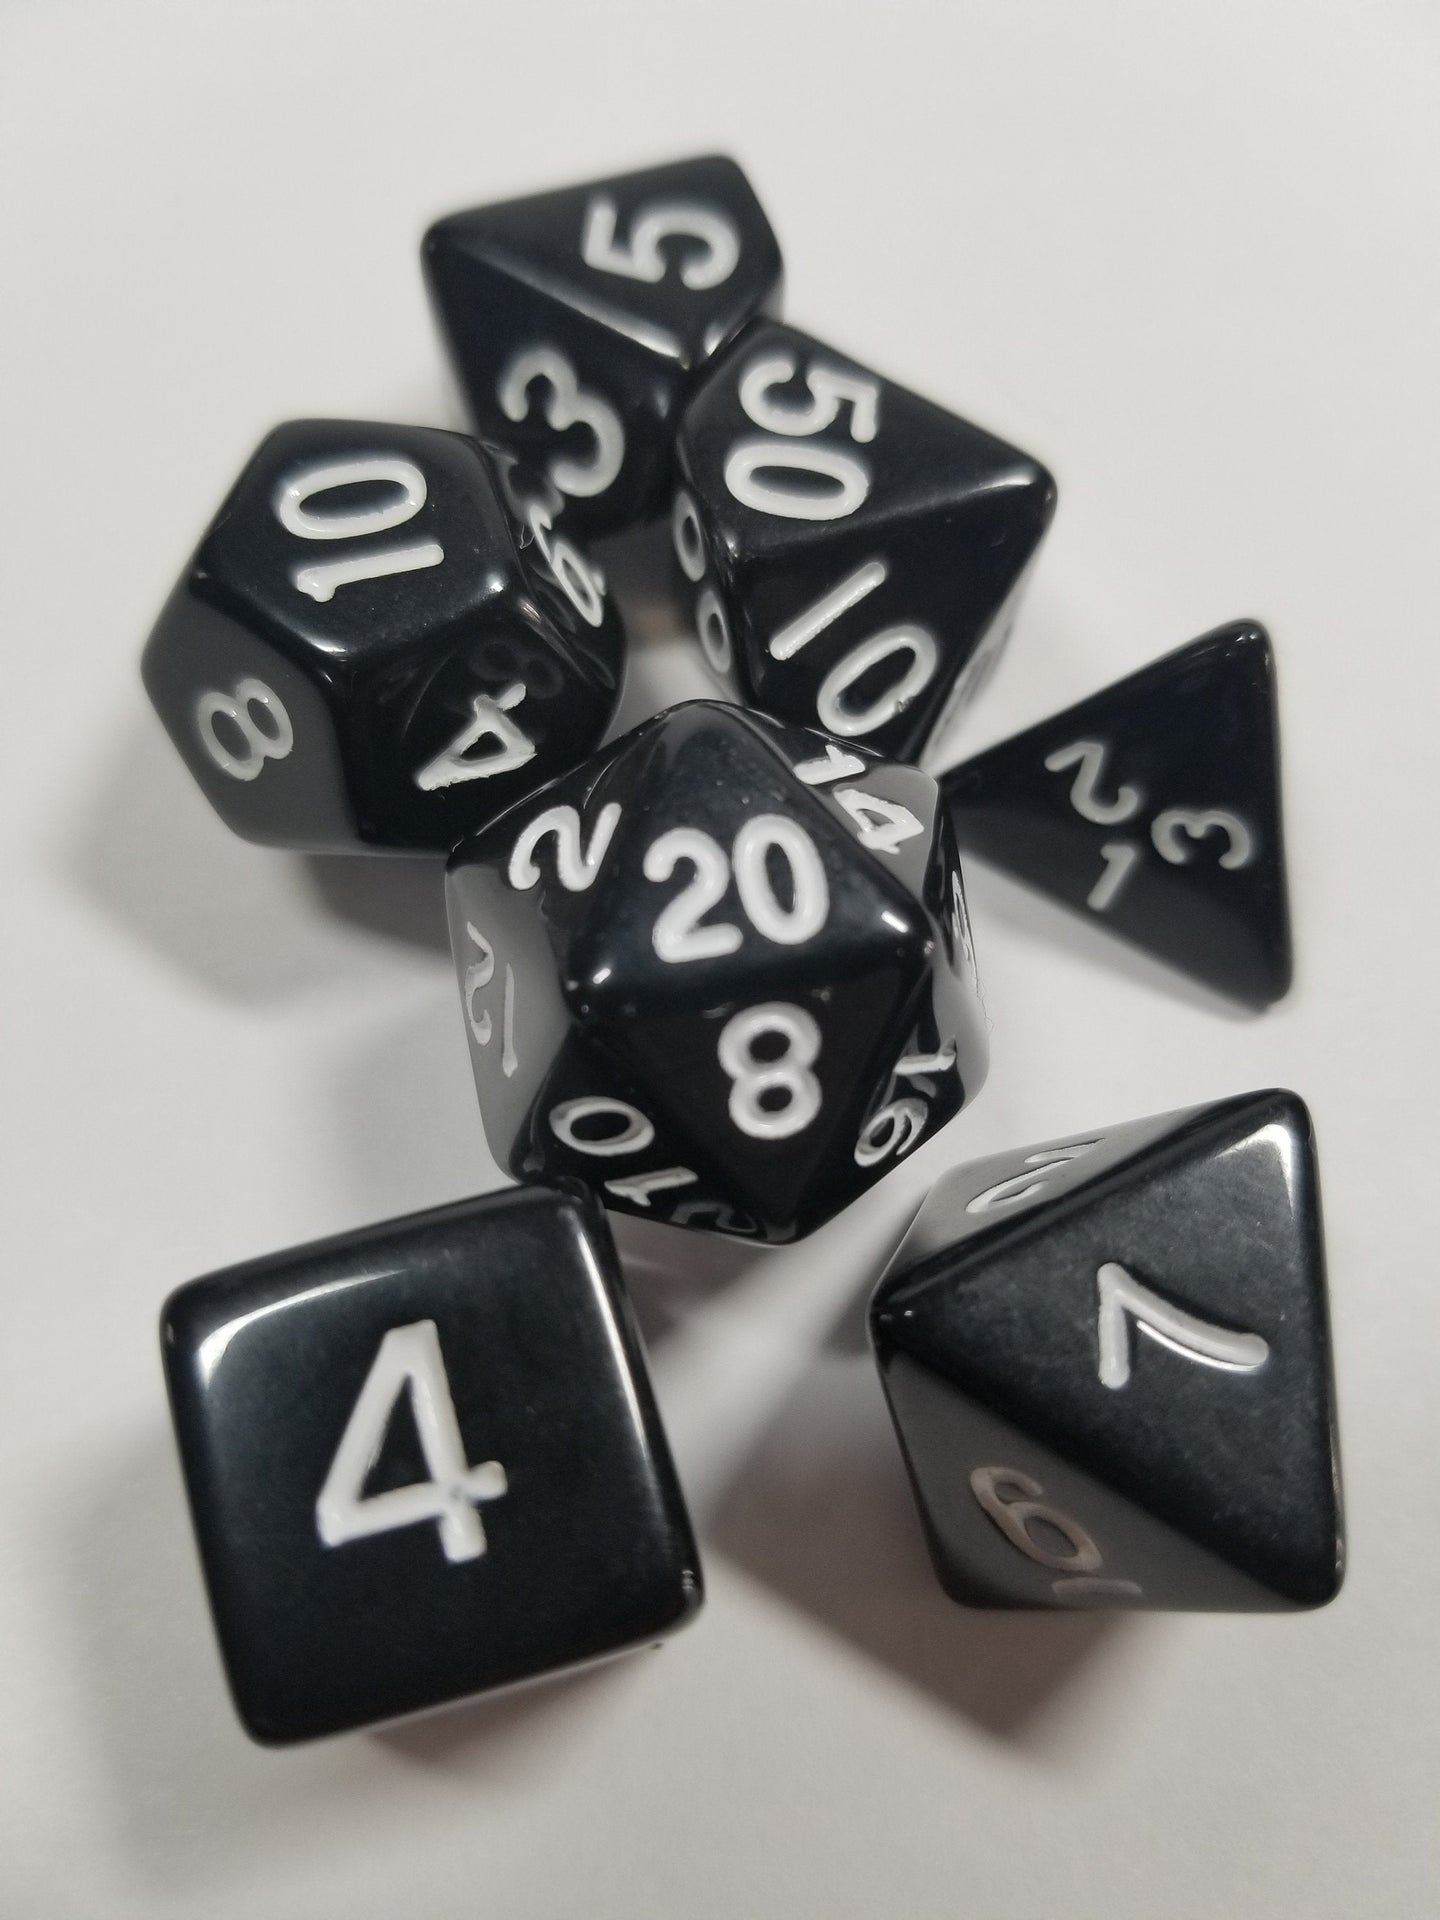 Black and White 7pc Dice Set